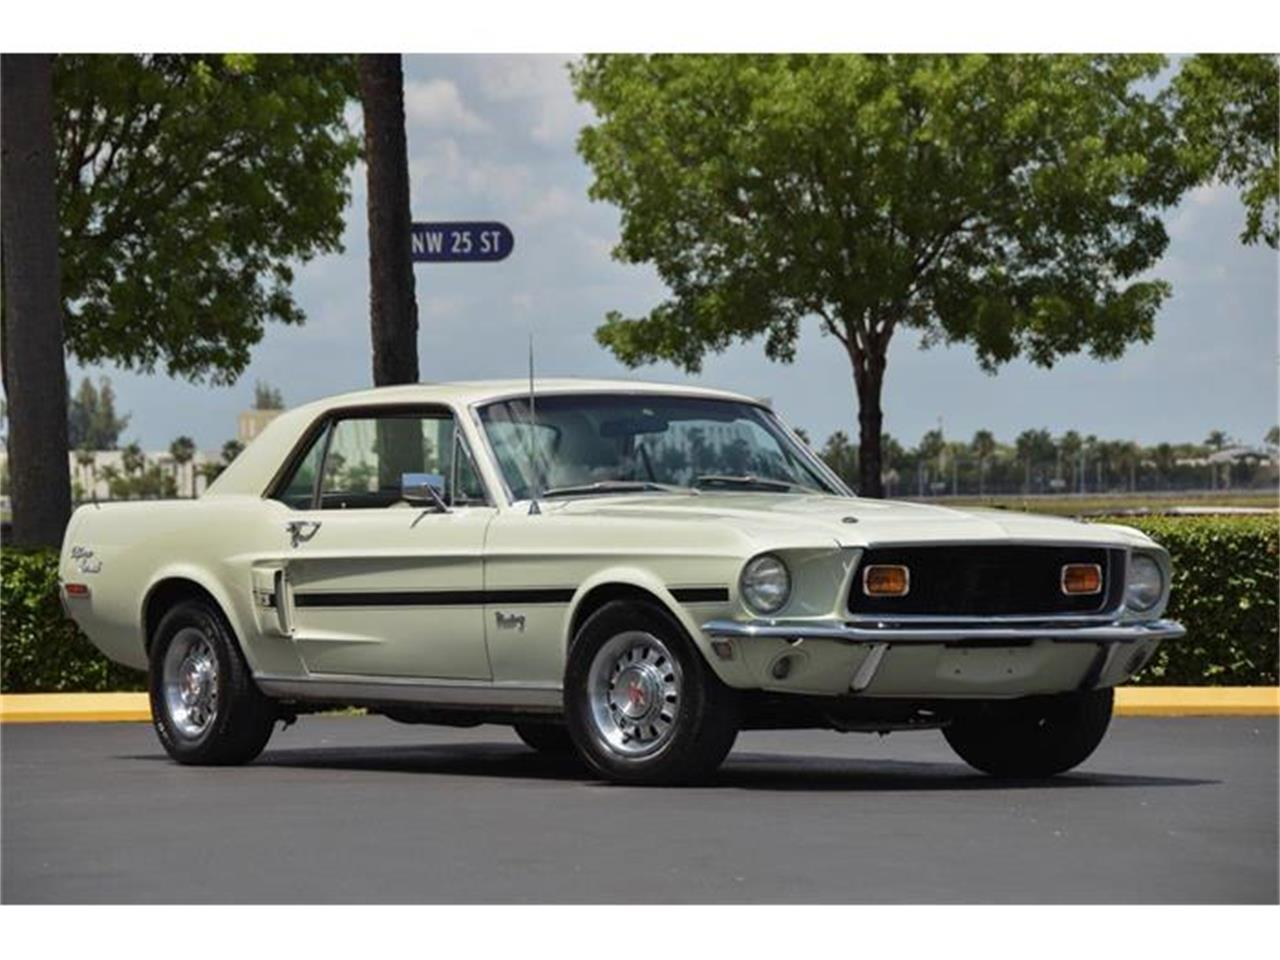 Large picture of 68 mustang gt cs california special e6m9